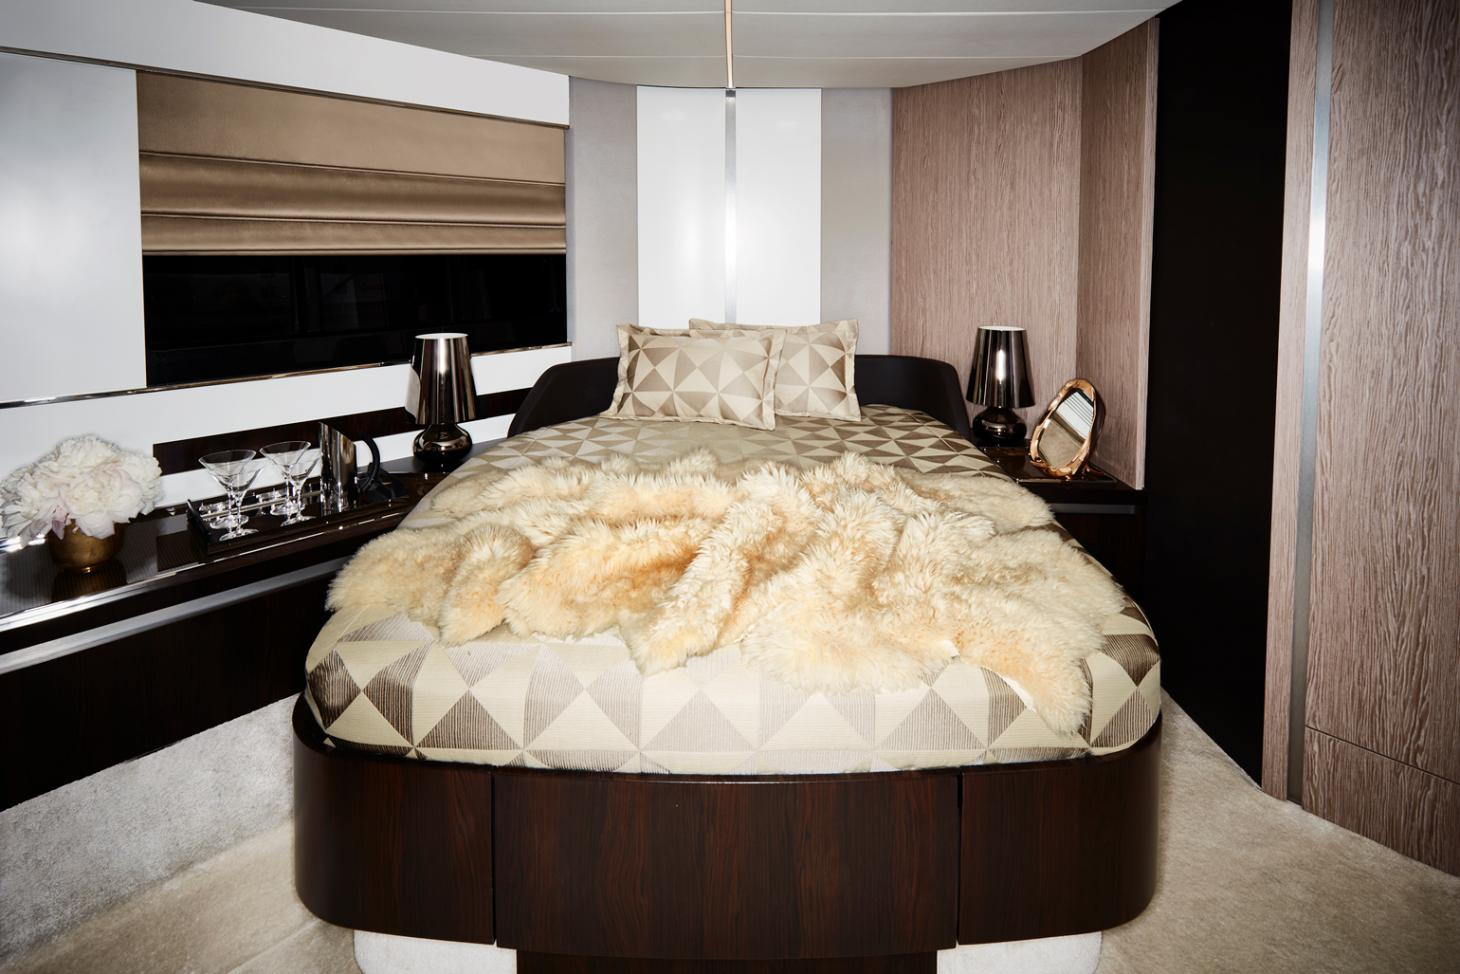 Bedroom on Azimut S6 Yacht